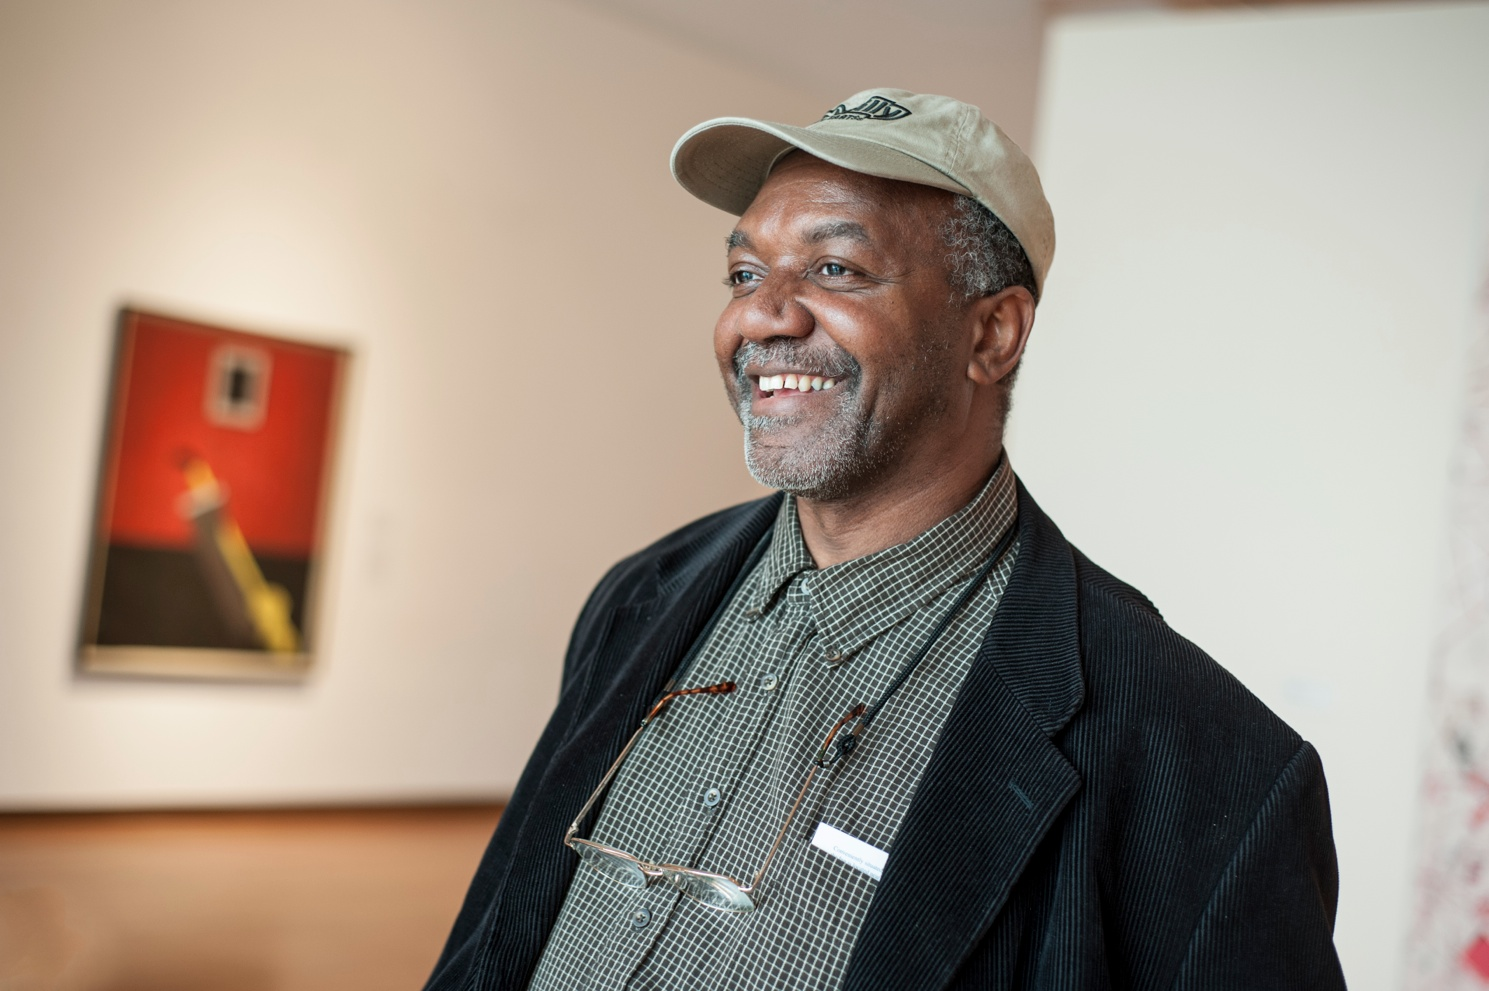 Kerry James Marshall by J Caldwell